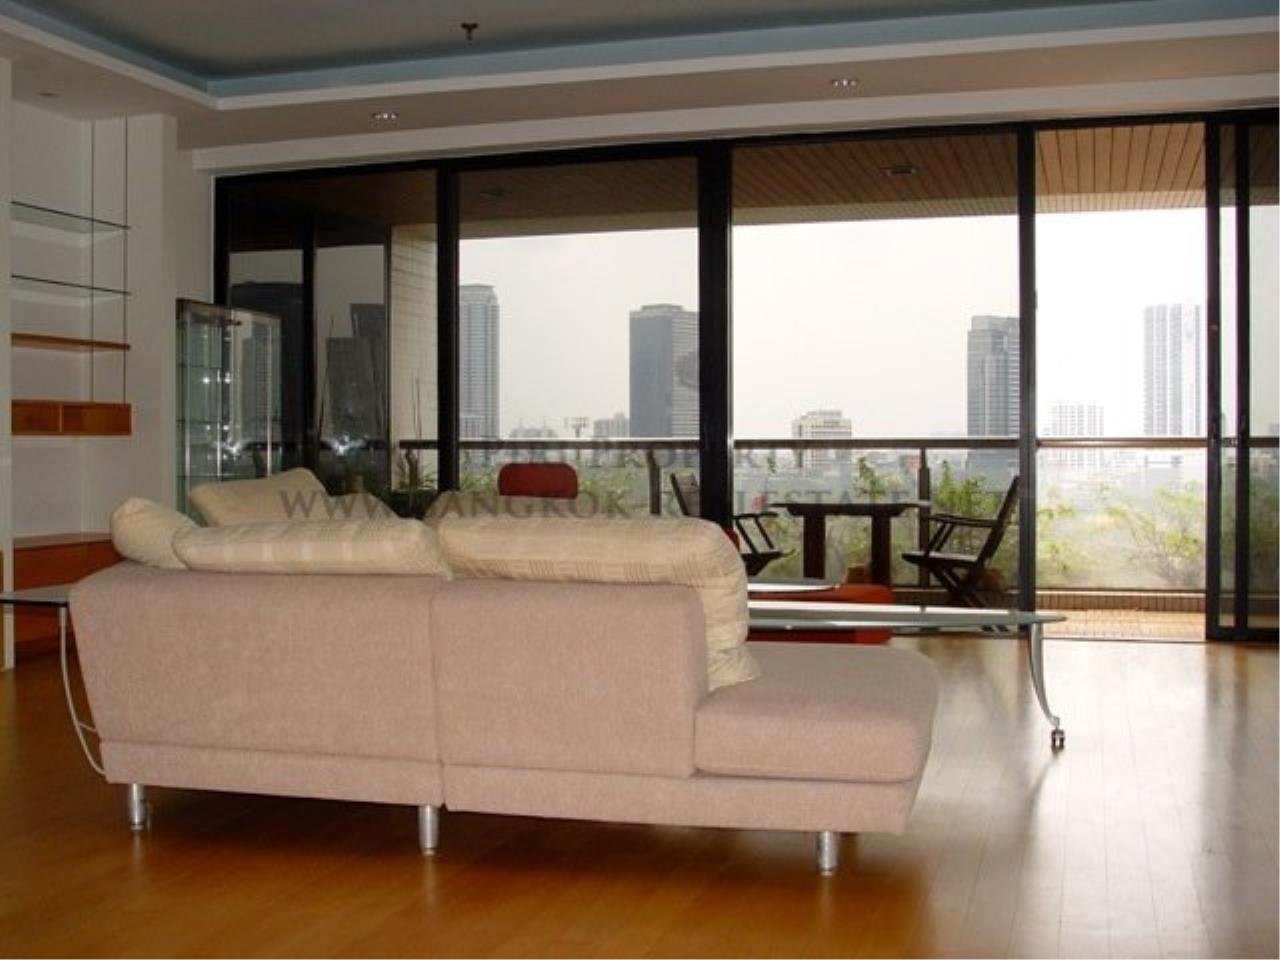 Piri Property Agency's Polo Park Condominium - Huge 2 Bedroom with 220 SQM 1